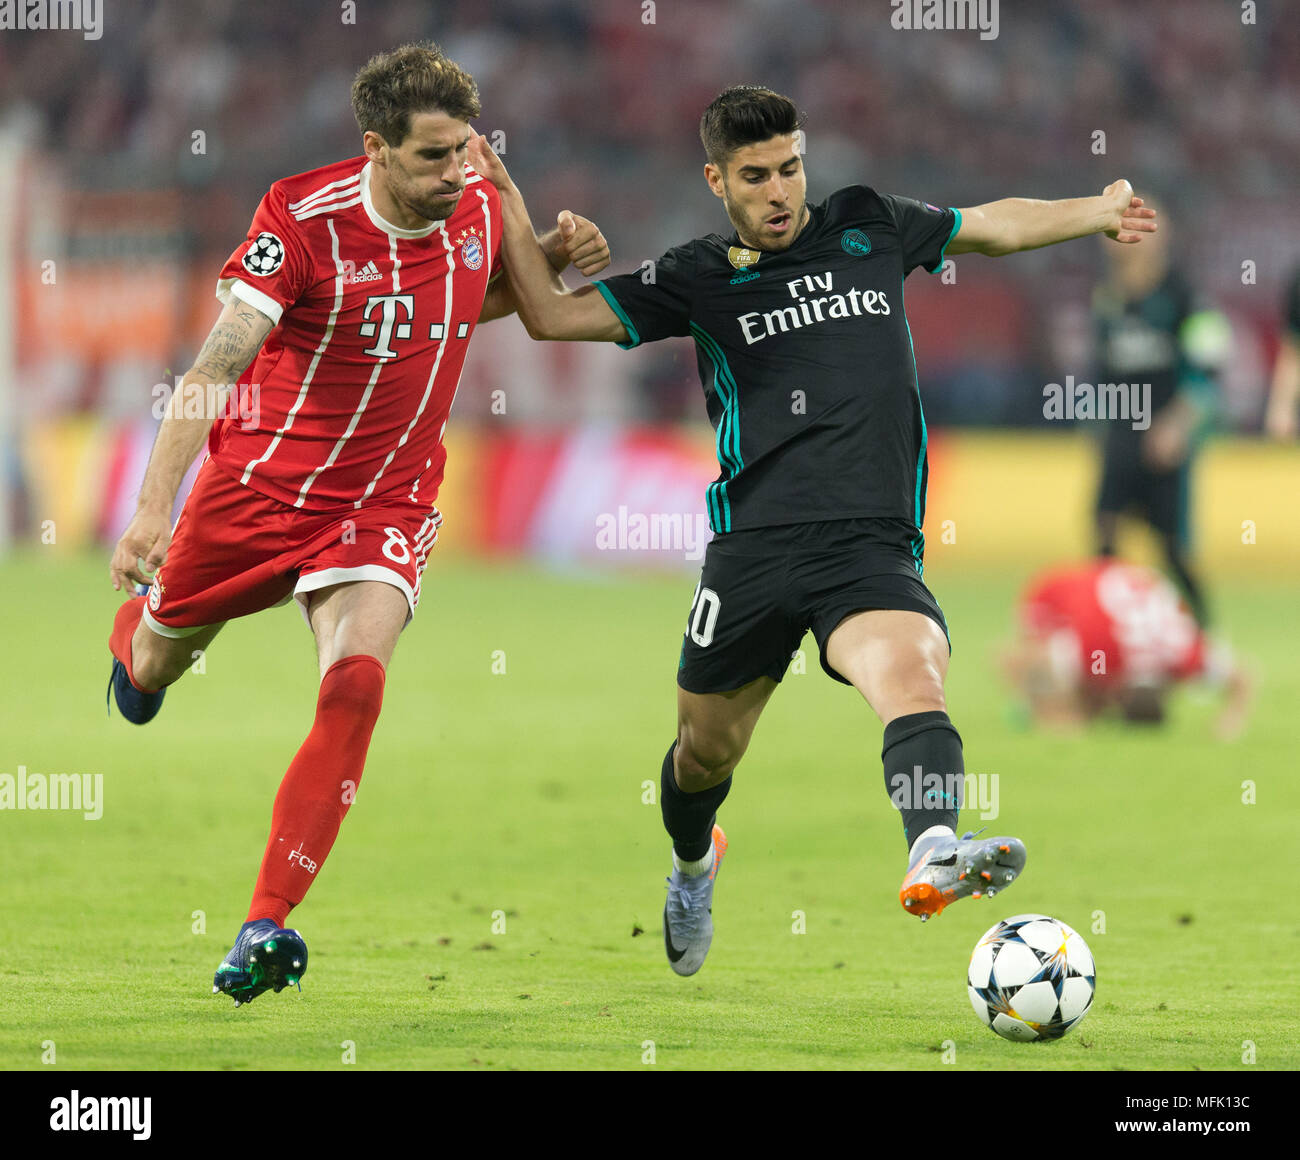 5f8d1a8bd1d Javi Martinez (FCB) in duels with Marco Asensio (Real Madrid) GES Football Champions  League semi-finals  FC Bayern Munich - Real Madrid